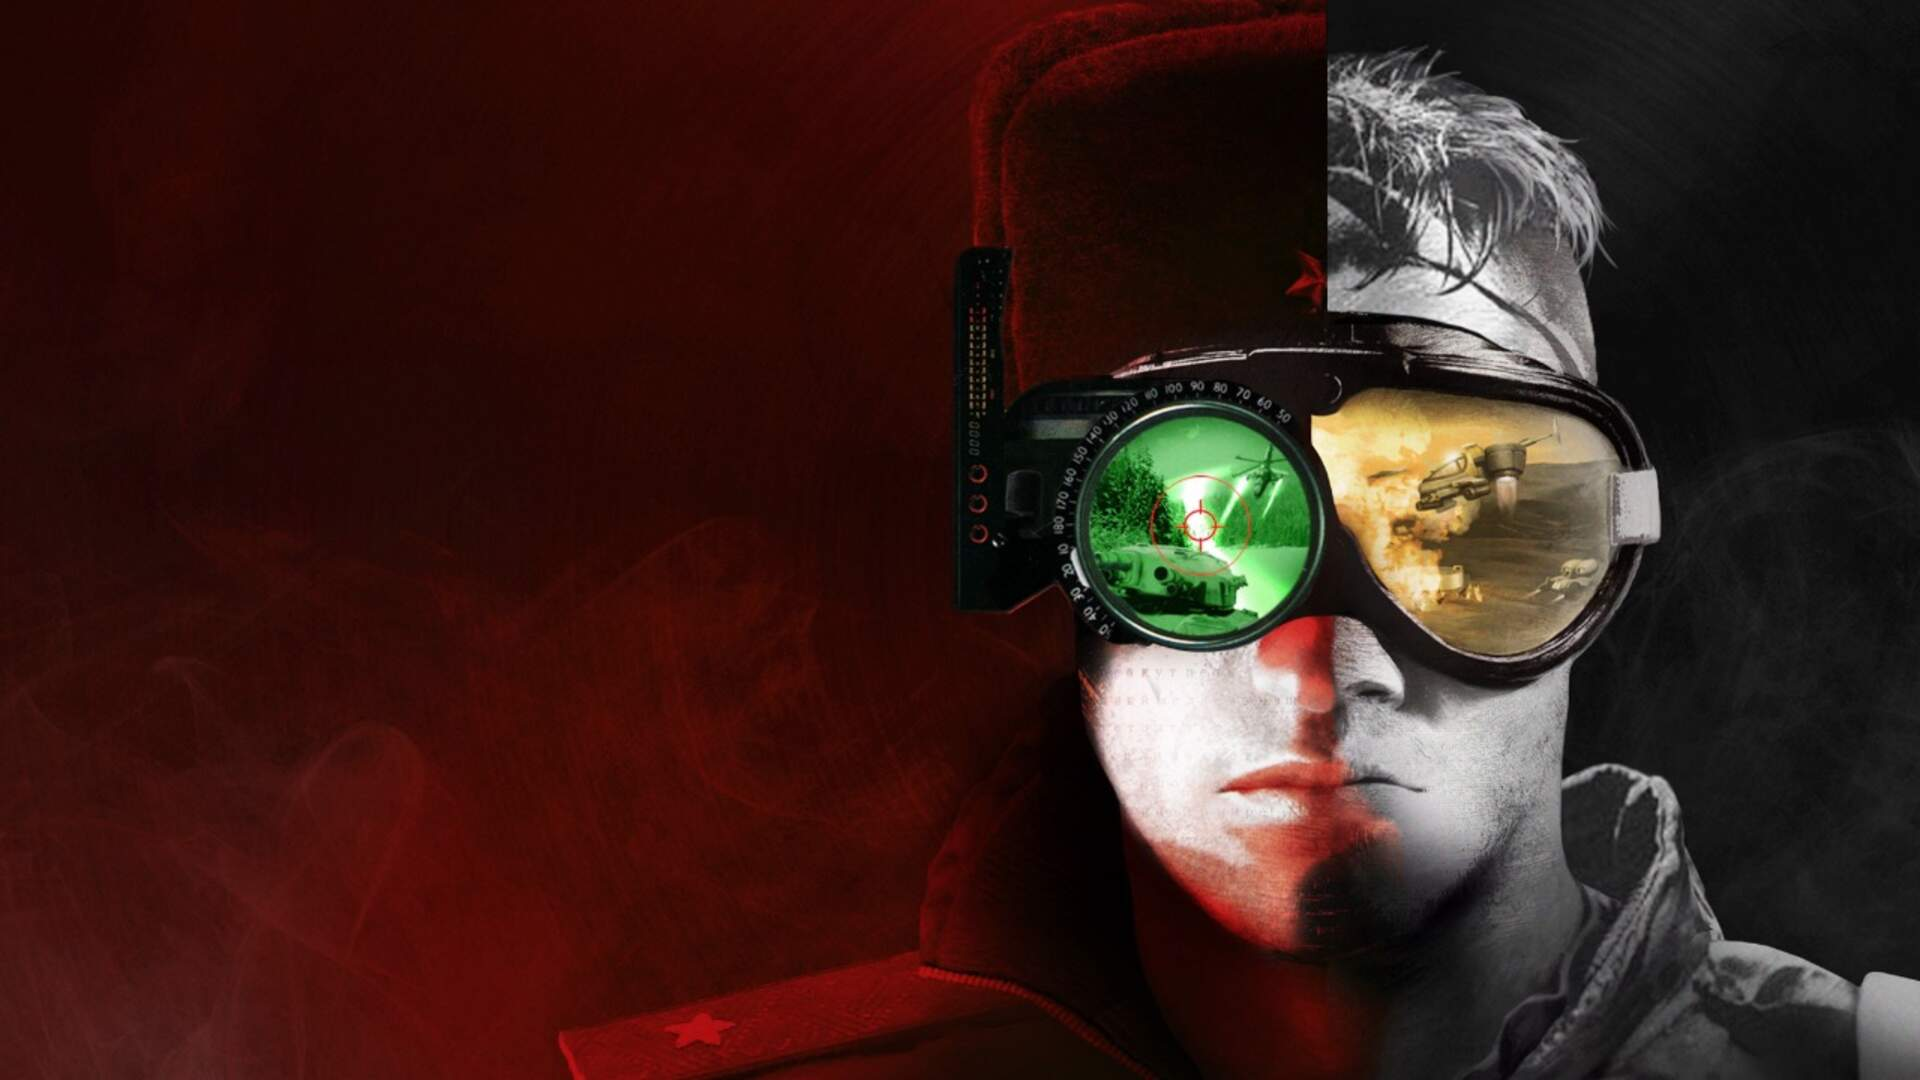 How Fan Feedback Inspired and Helped Build Command & Conquer's Remastered Collection